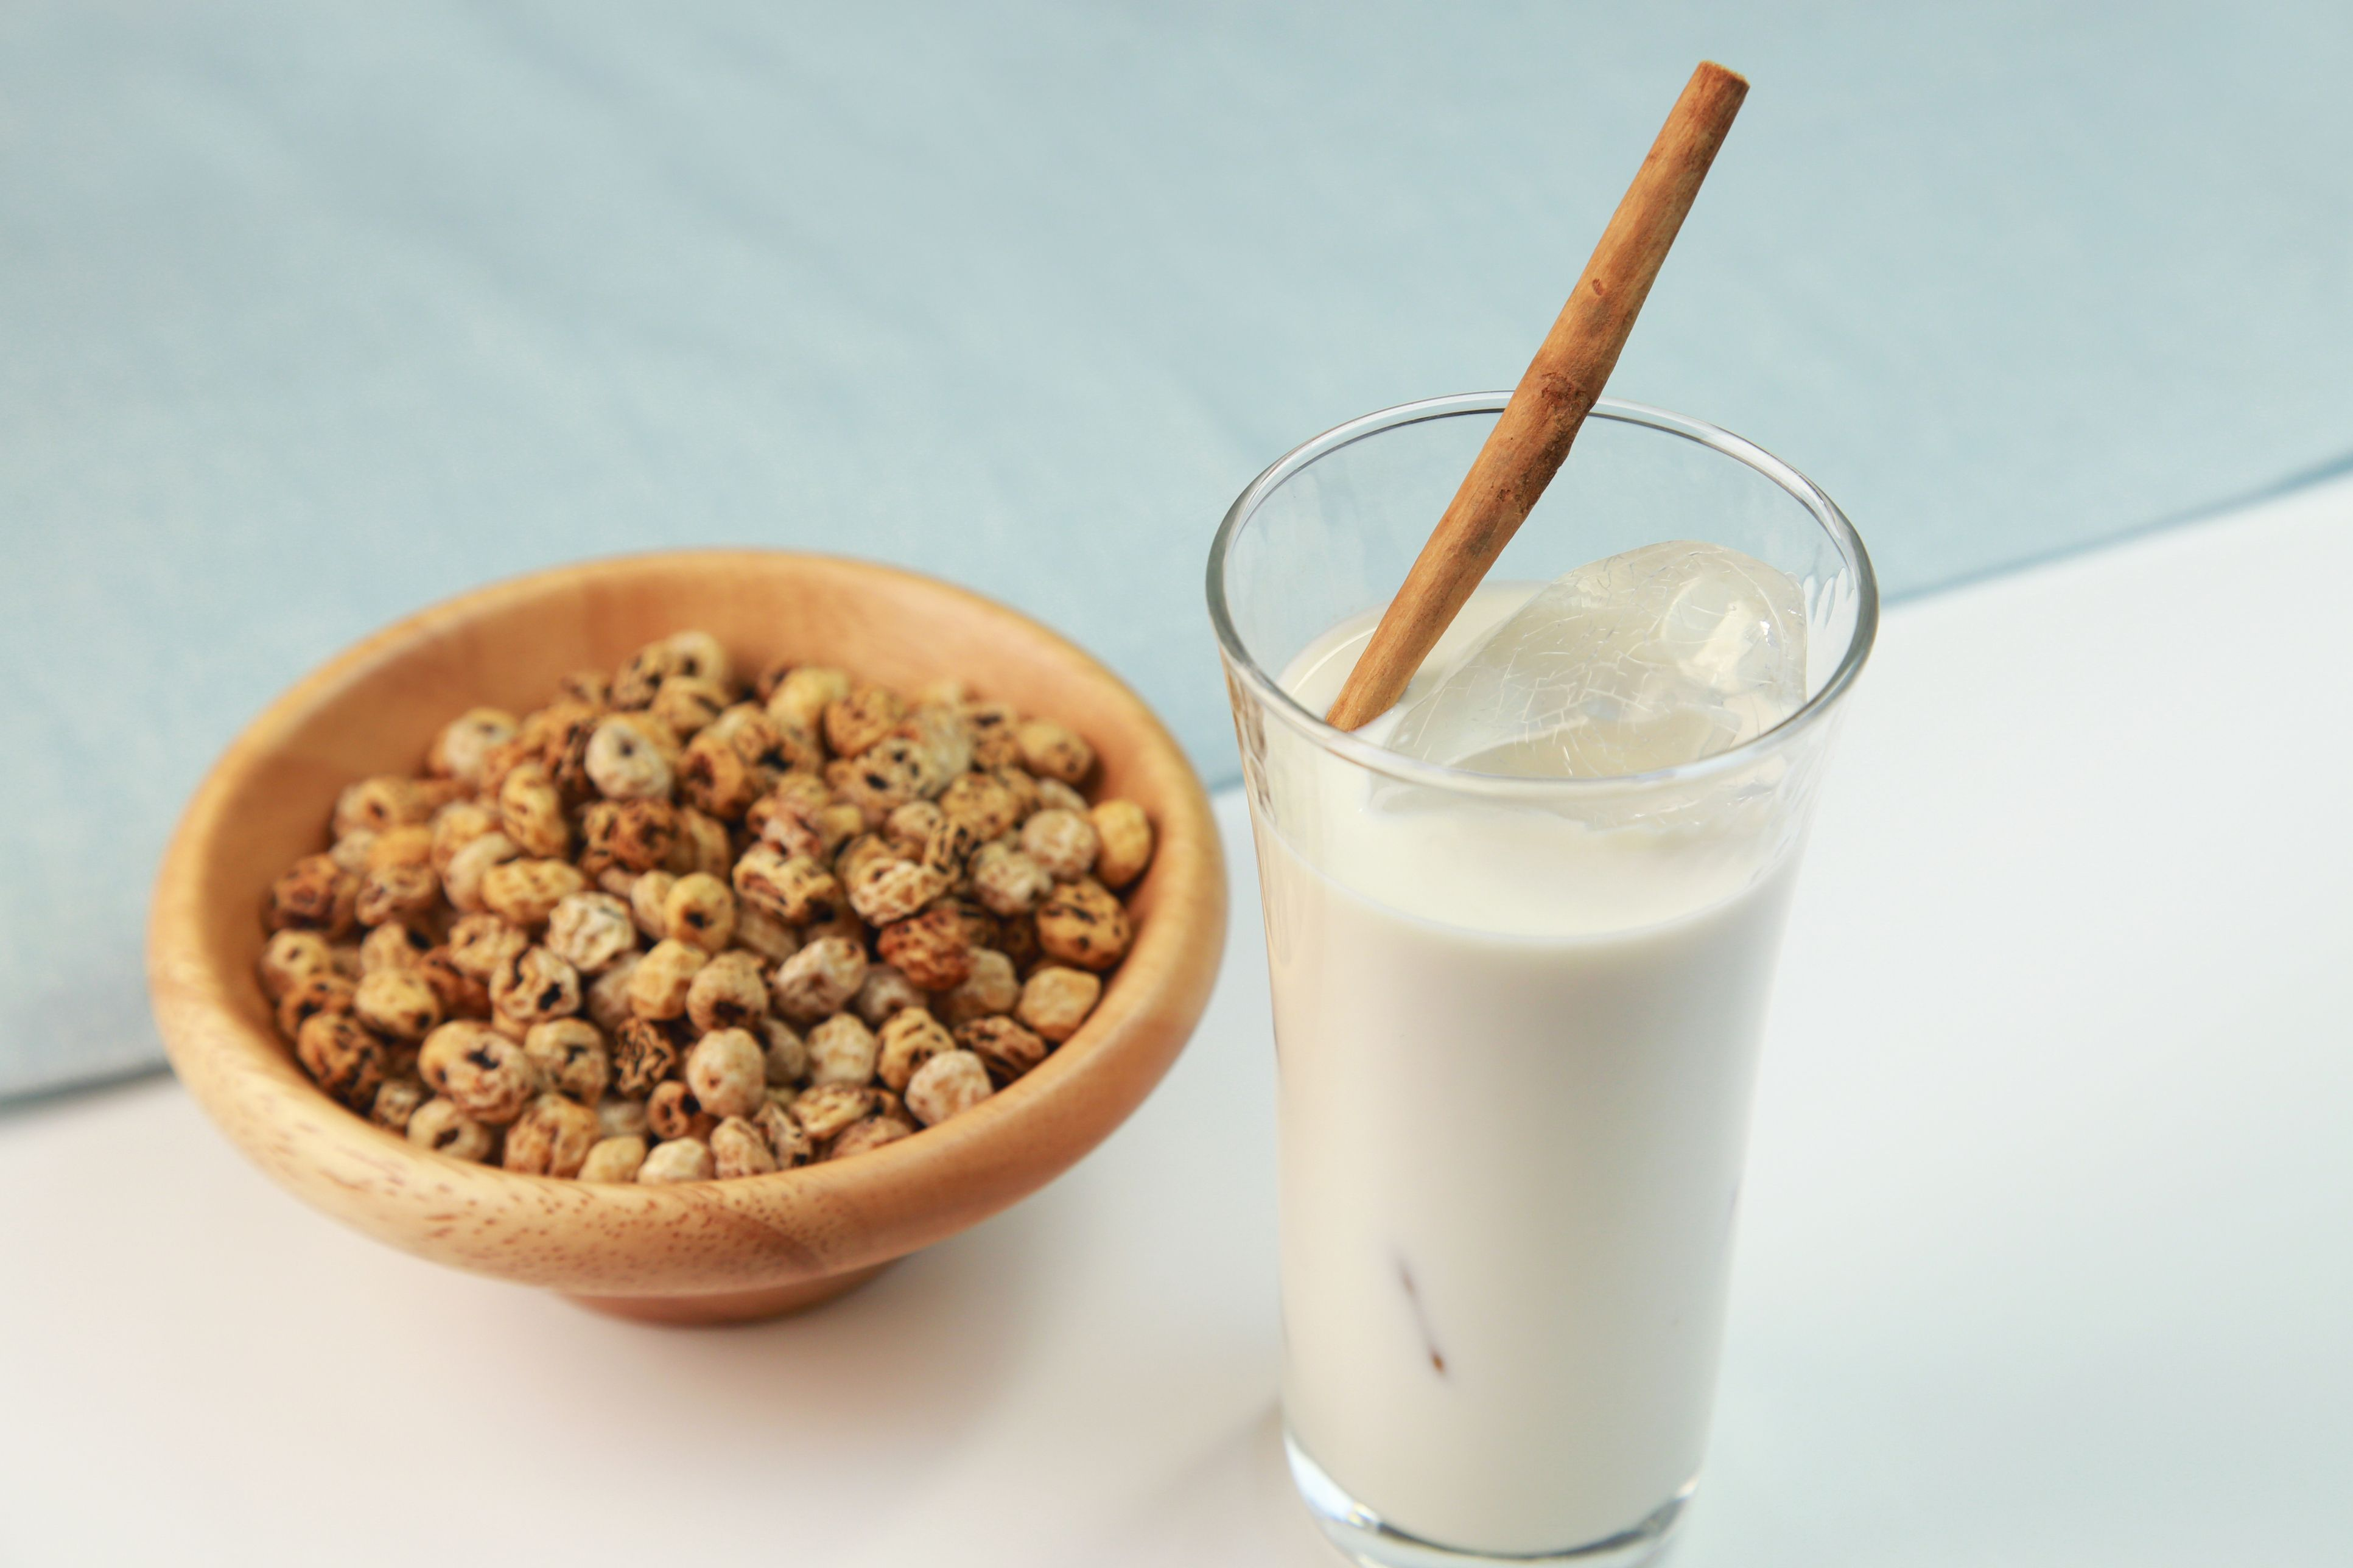 How to make tiger nut date and coconut milk